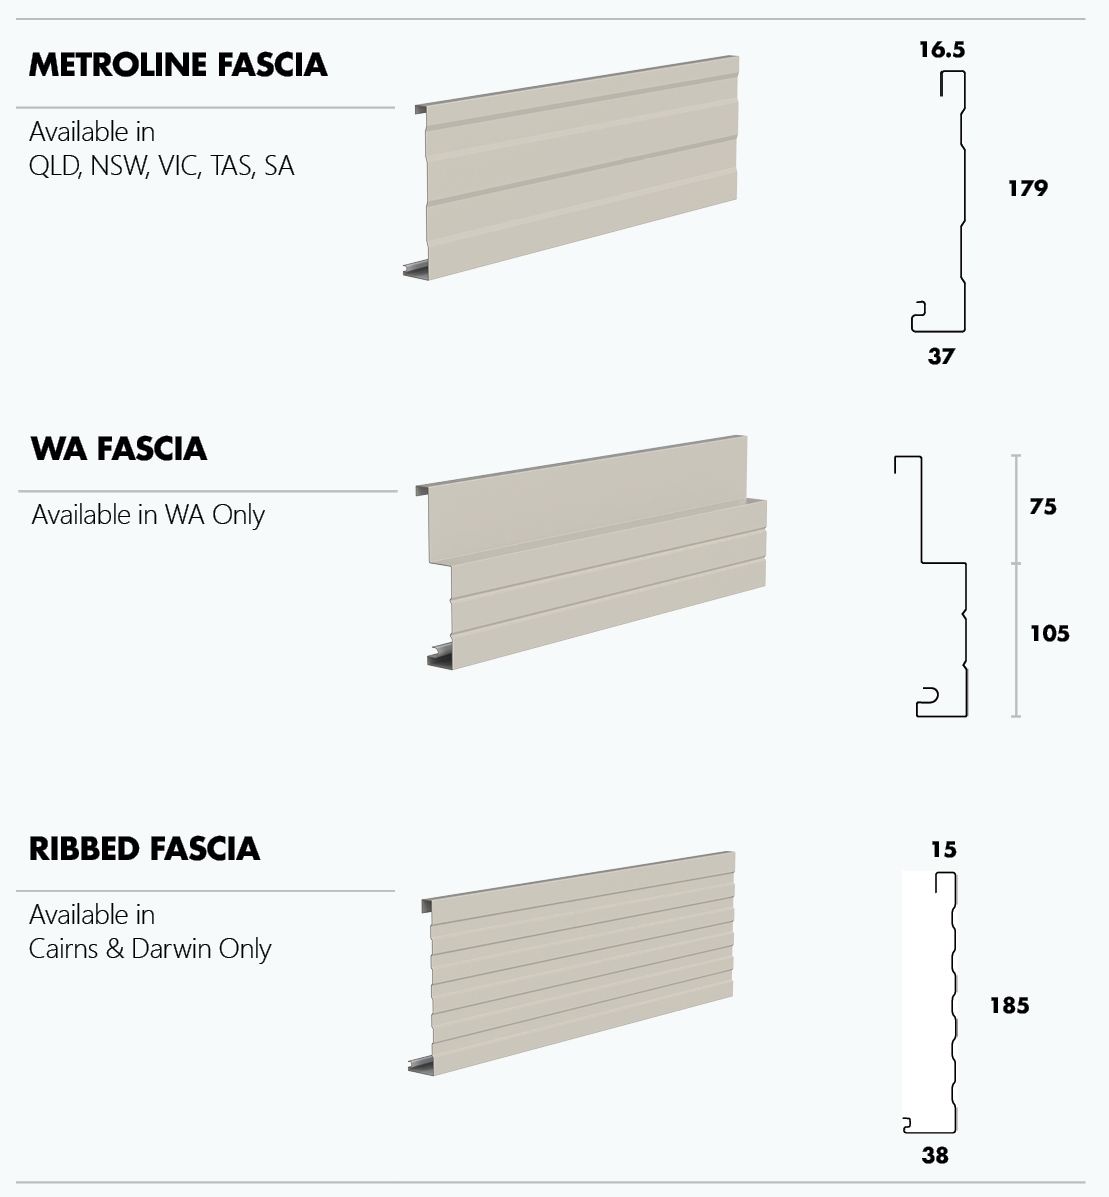 Metroll Metroline, Ribbed and WA Fascia profiles and dimensions